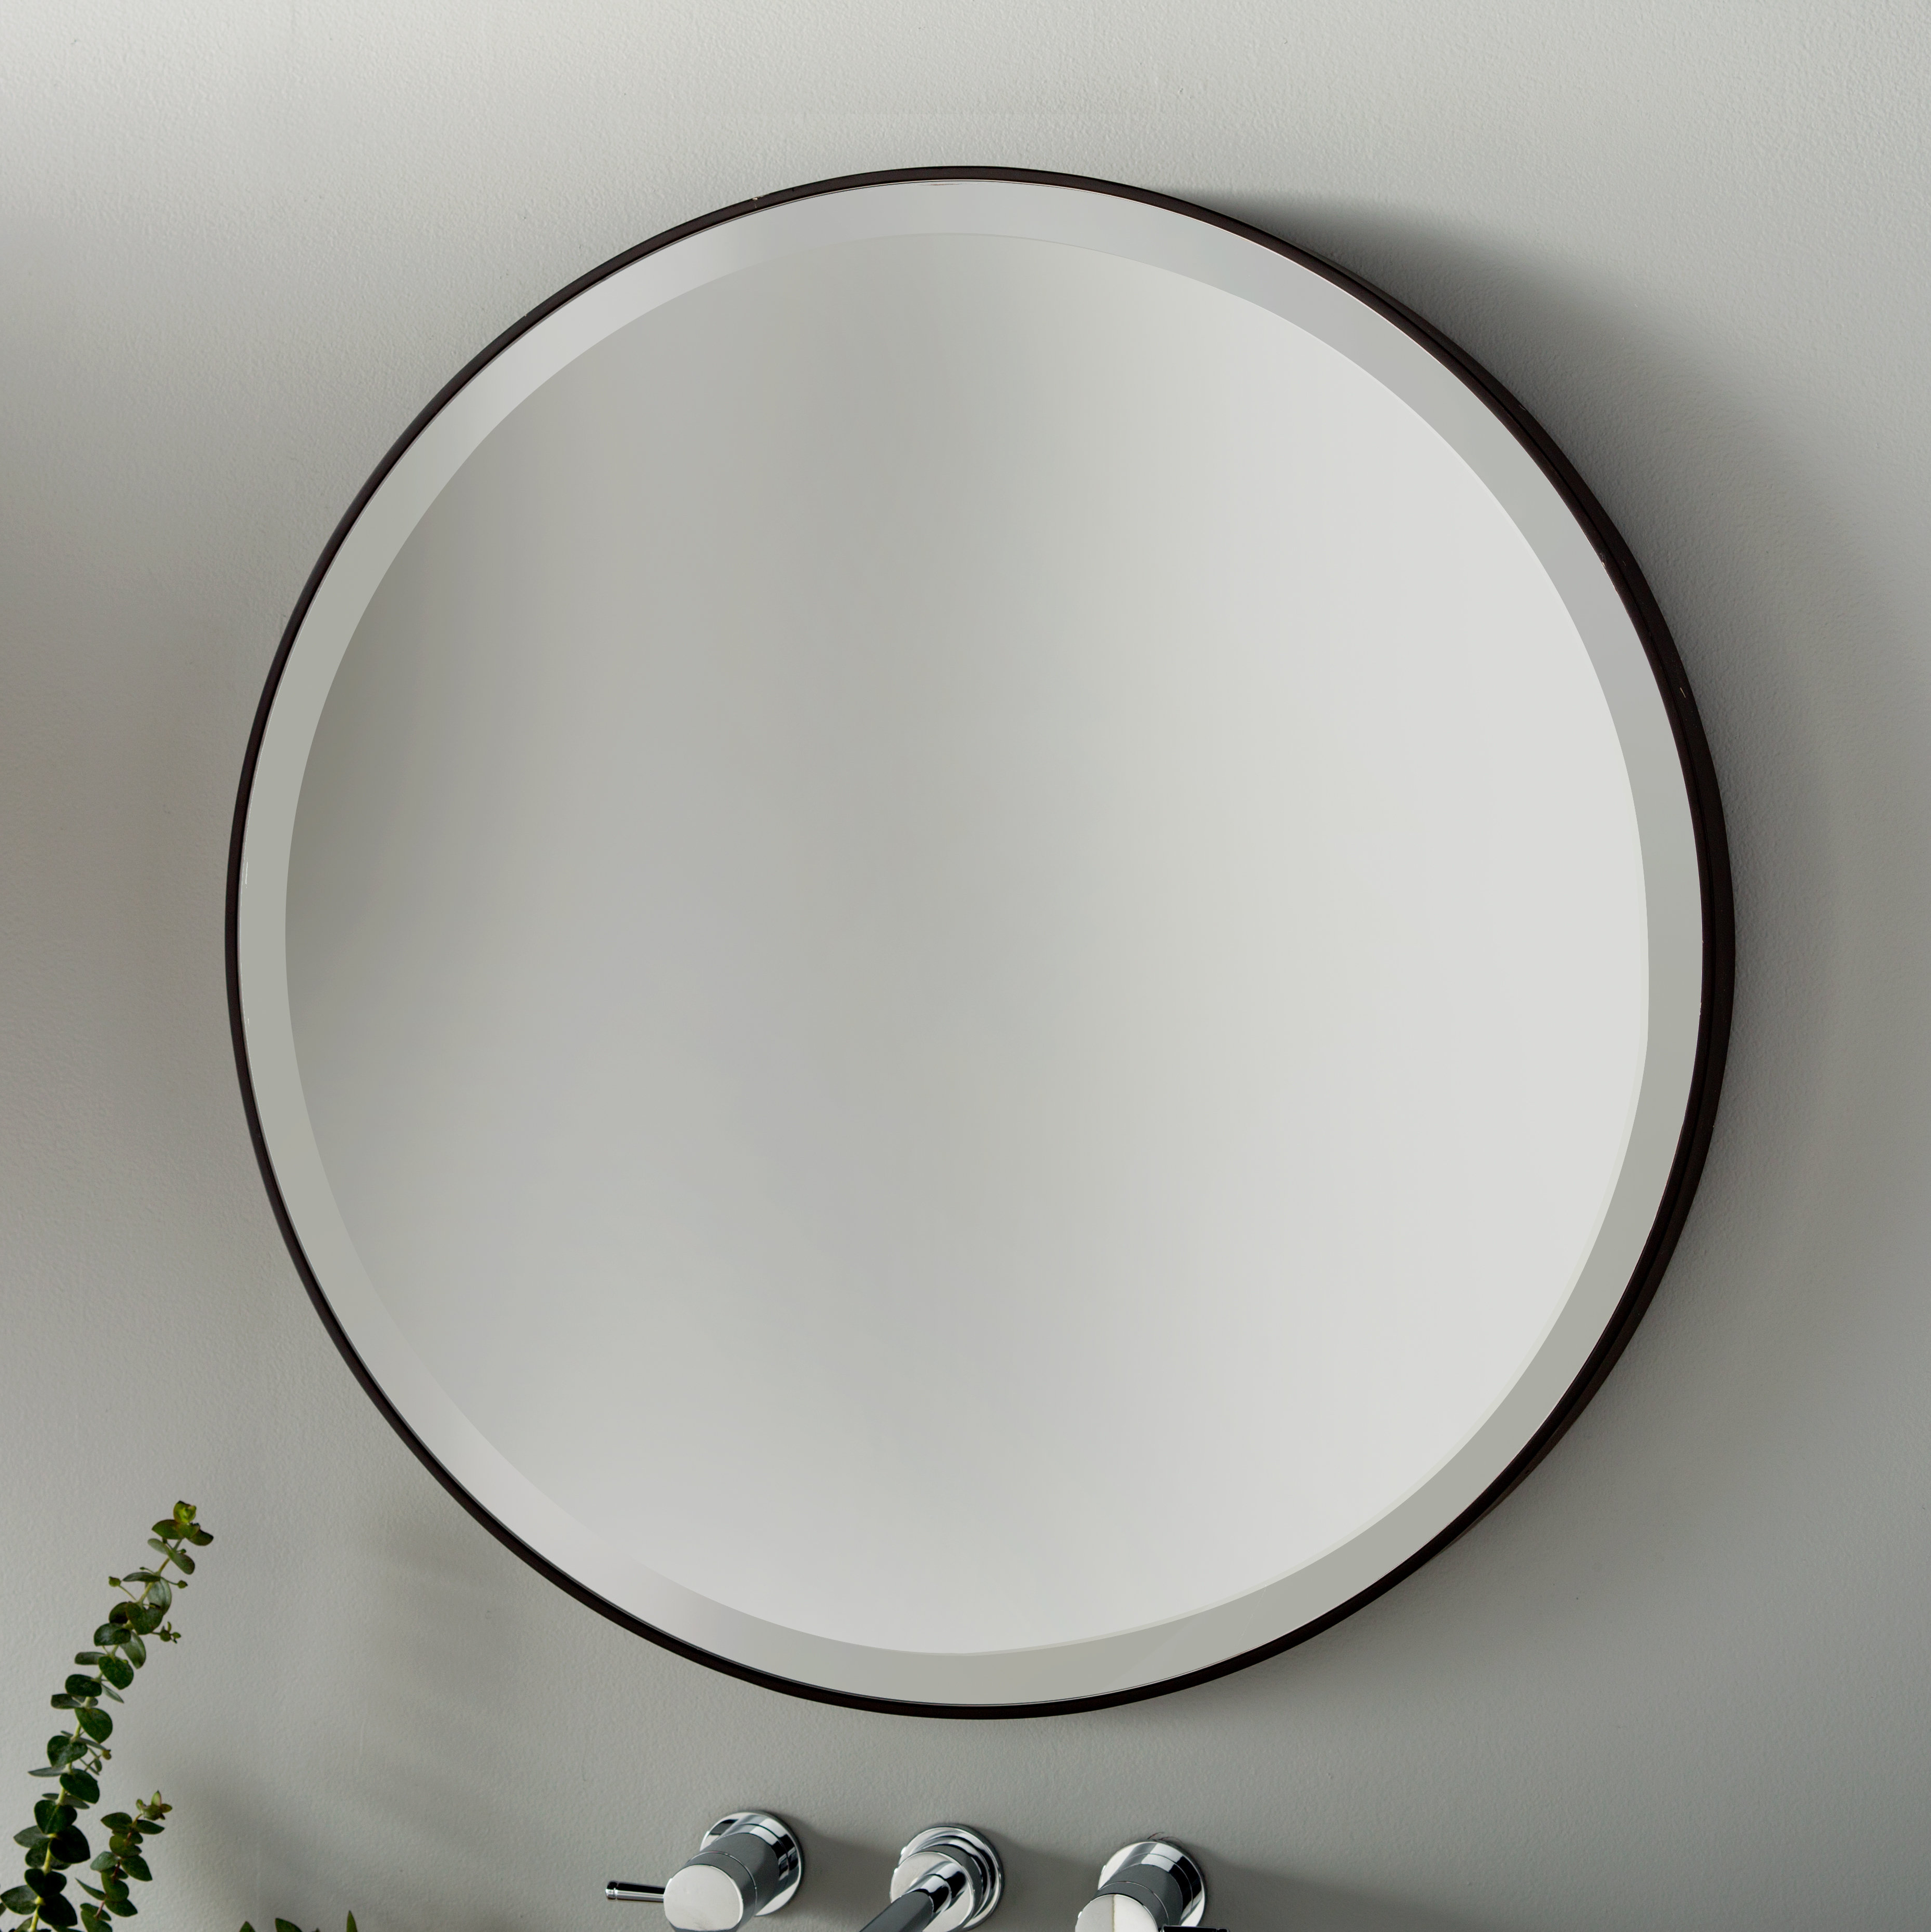 Contemporary Wall Mirrors With Regard To Latest Colton Modern & Contemporary Wall Mirror (View 5 of 20)